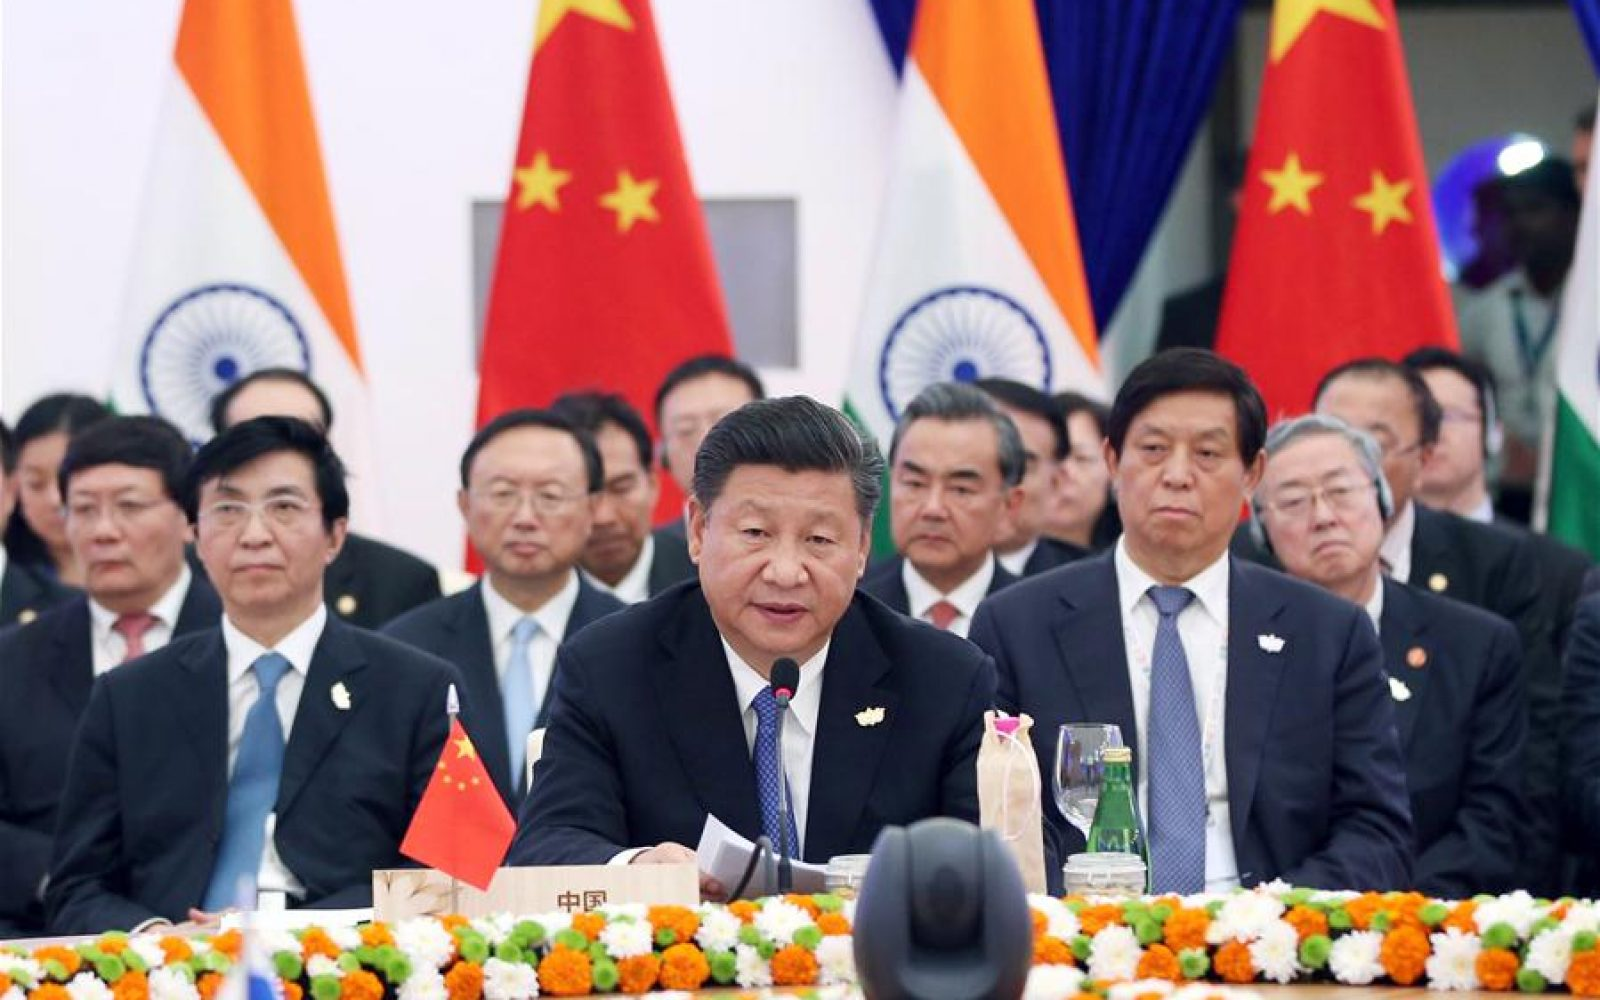 Chinese President Calls on BRICS Countries to Cement Confidence, Act Against Challenges